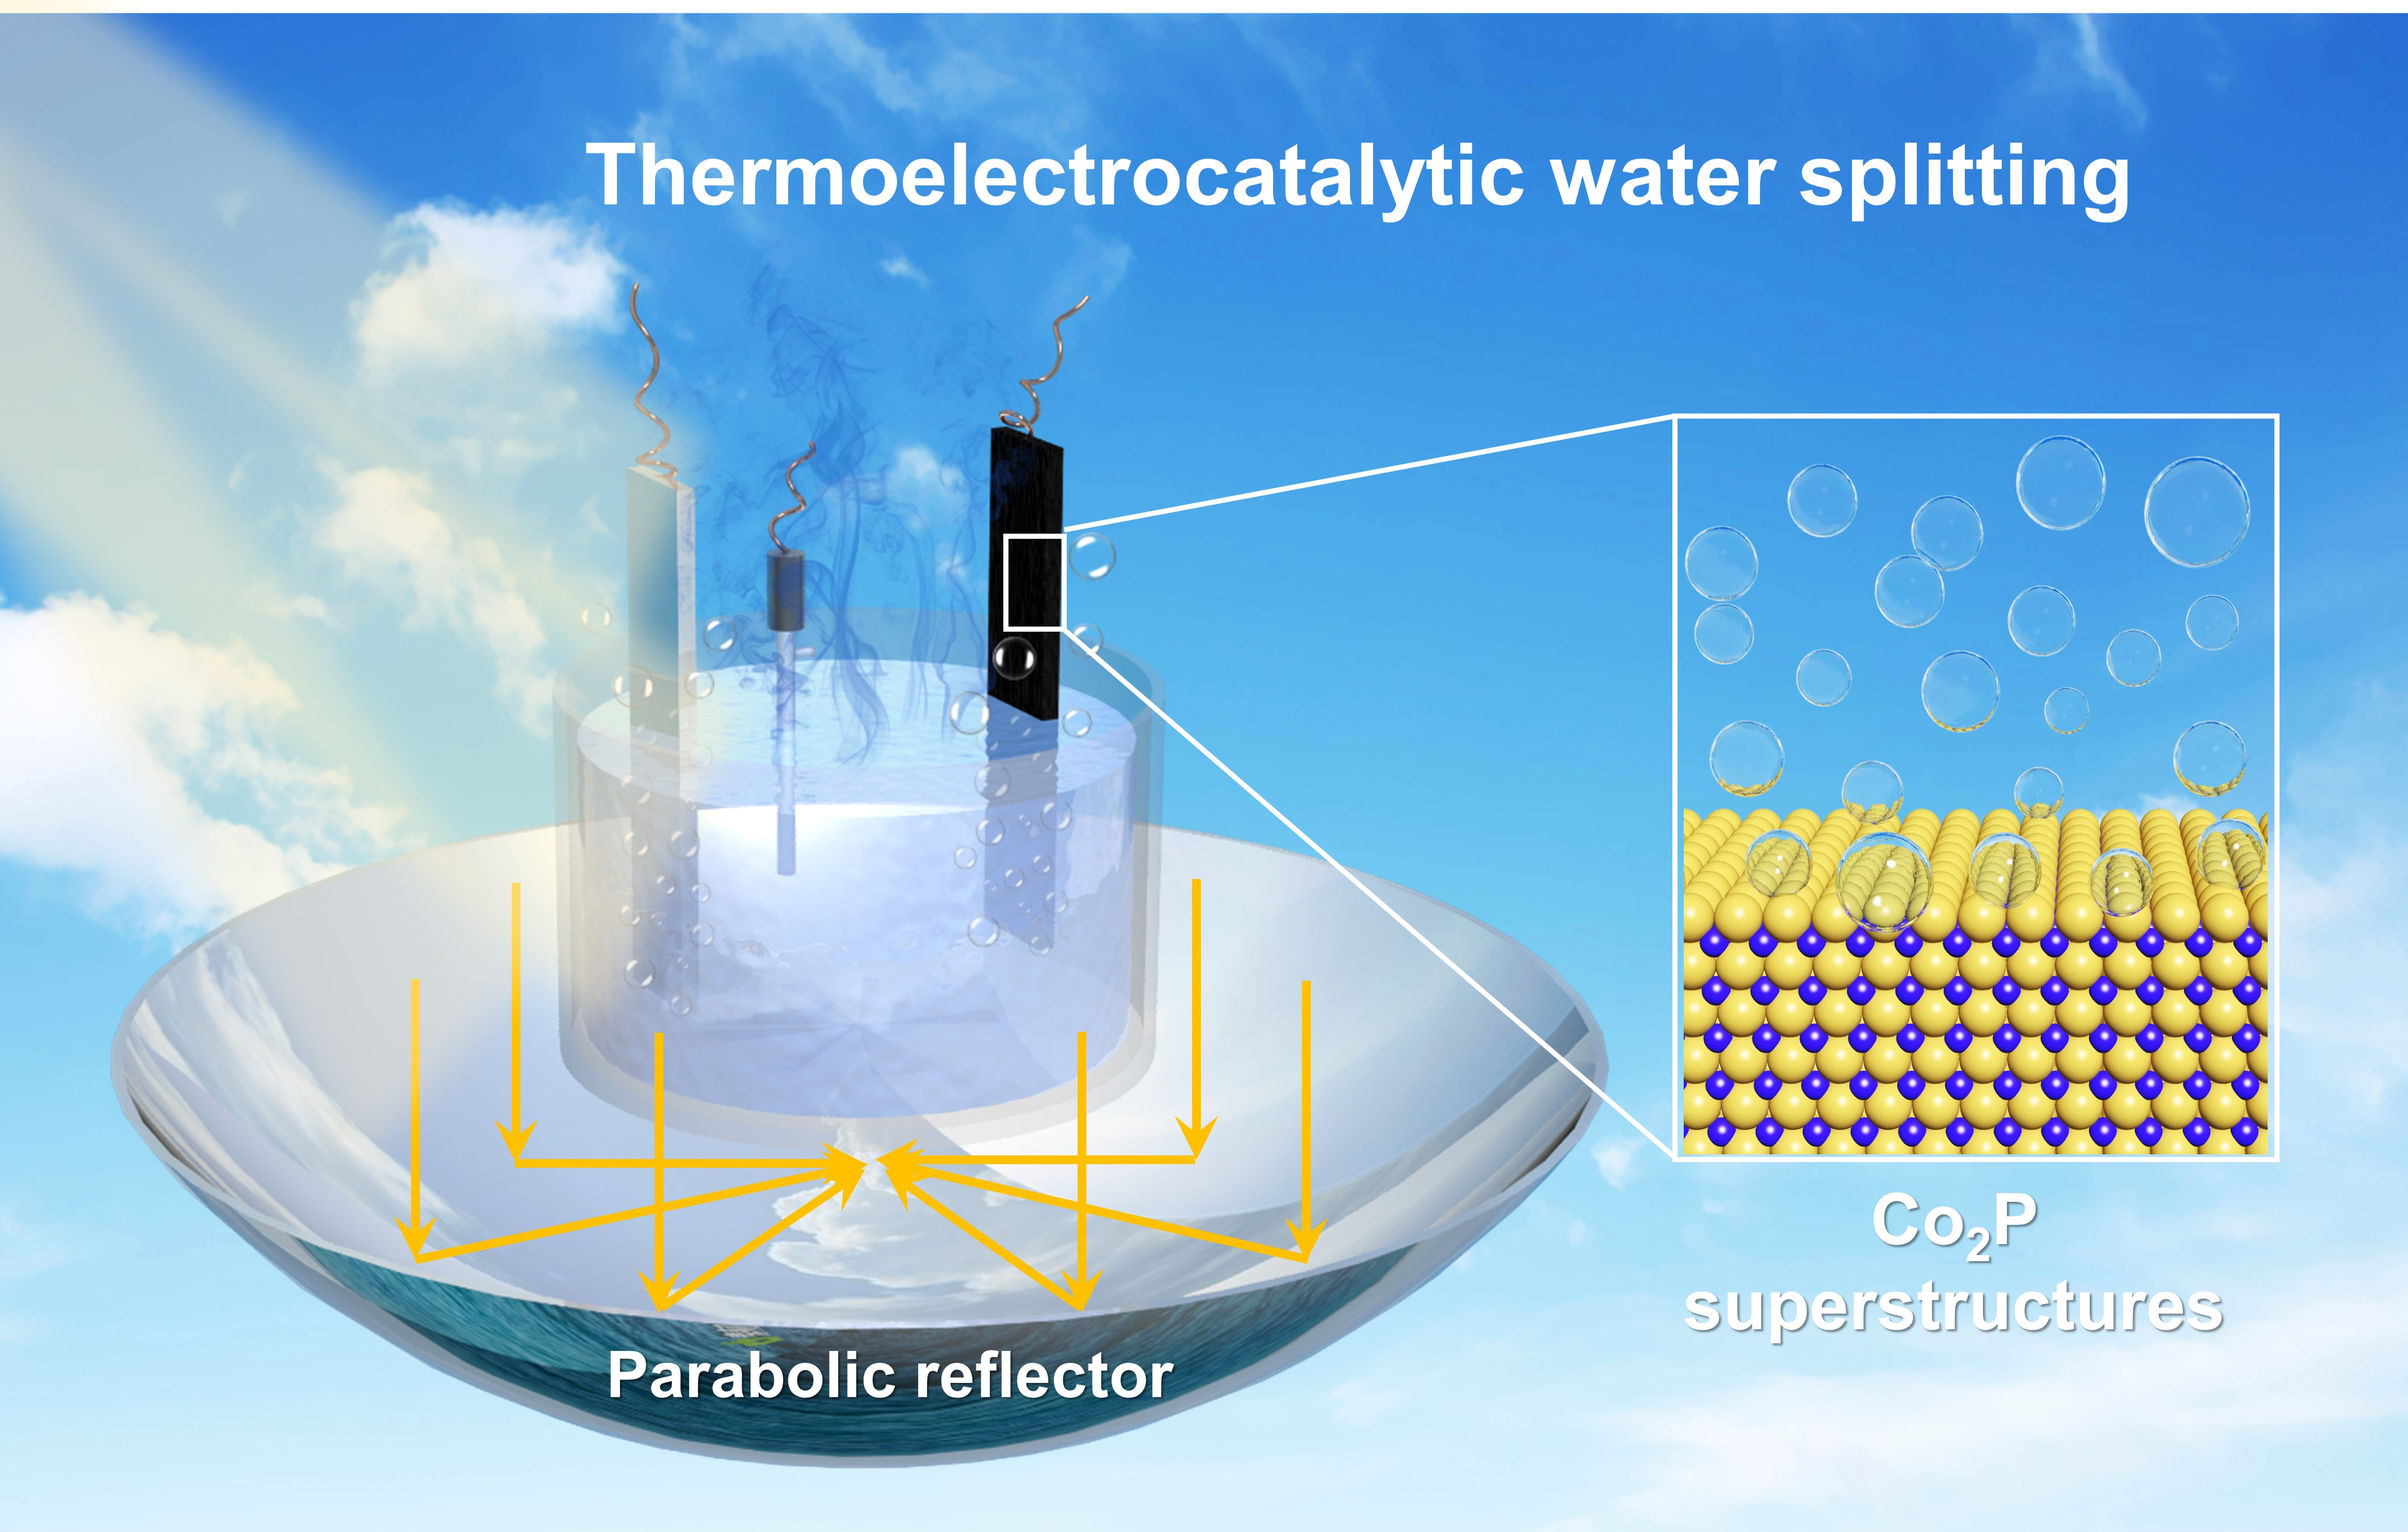 Electrodeposited Cobalt Phosphide Superstructures for Solar-driven Thermoelectrocatalytic Overall Water Splitting